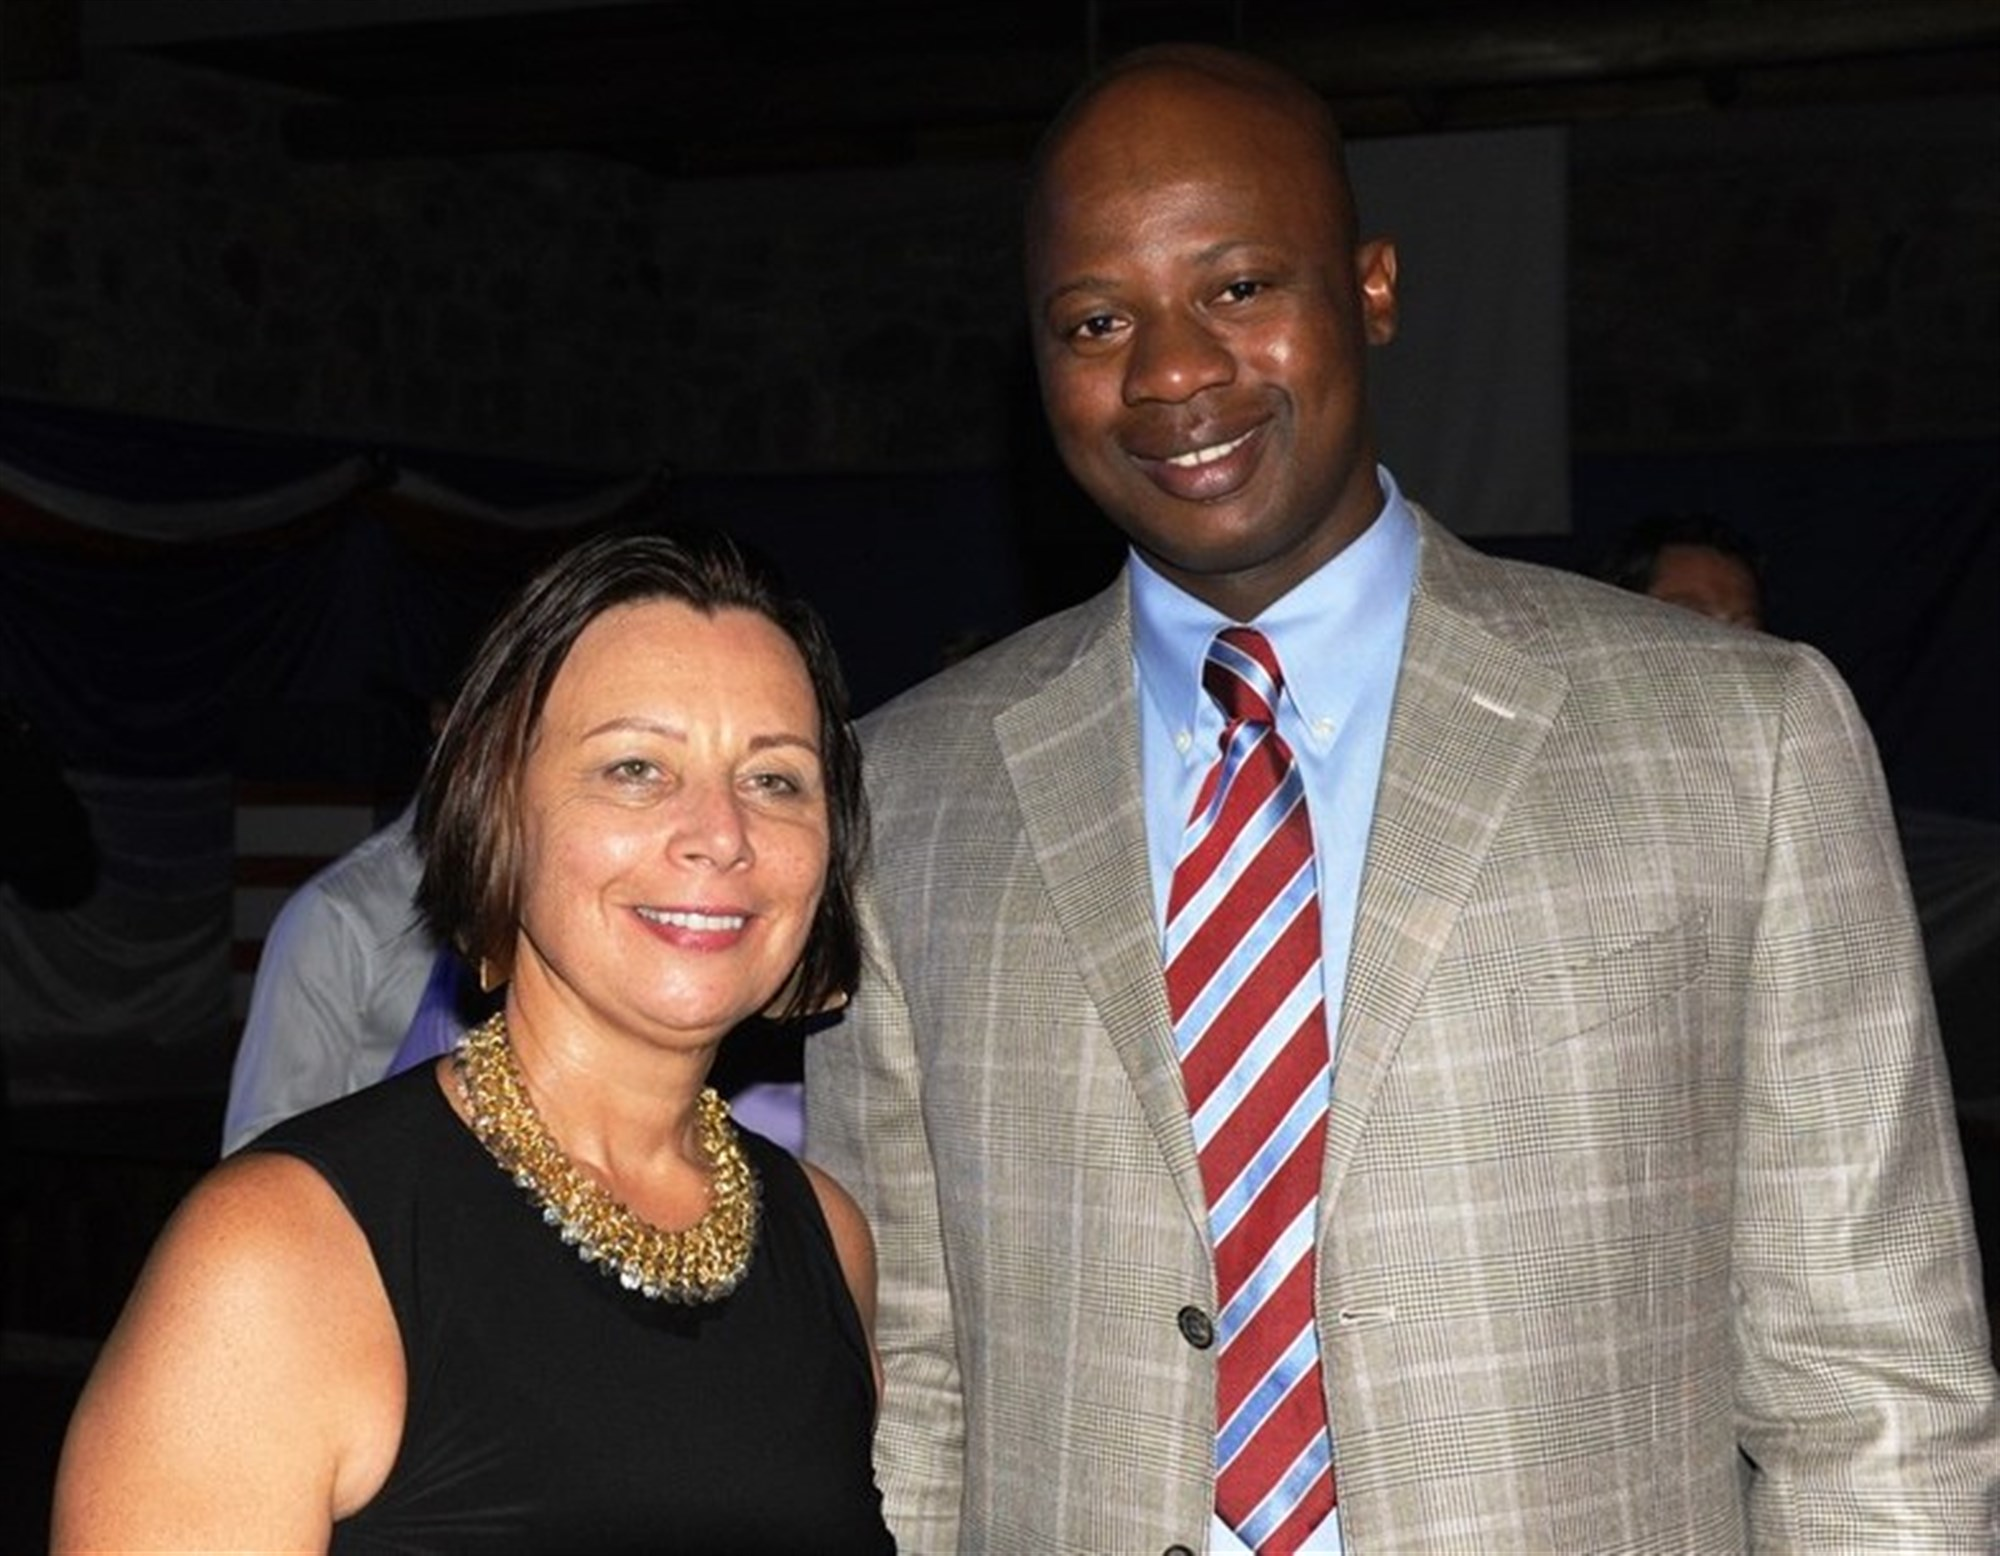 2nd Lt. Komi Afetse, Combined Joint Task Force-Horn of Africa, and Ambassador Dawn Liberi, U.S. Ambassador to the Republic of Burundi, pose for a photo during the 239th Marine Corps Birthday Celebration in Bujumbura, Burundi, Nov. 8, 2014. Afetse immigrated to the U.S. from Togo, and earned his commission through the Army Reserve Officer Accession Program on Feb. 14, 2015.  (U.S. Navy photo by Chief Mass Communication Specialist Allison Pittam/Released)